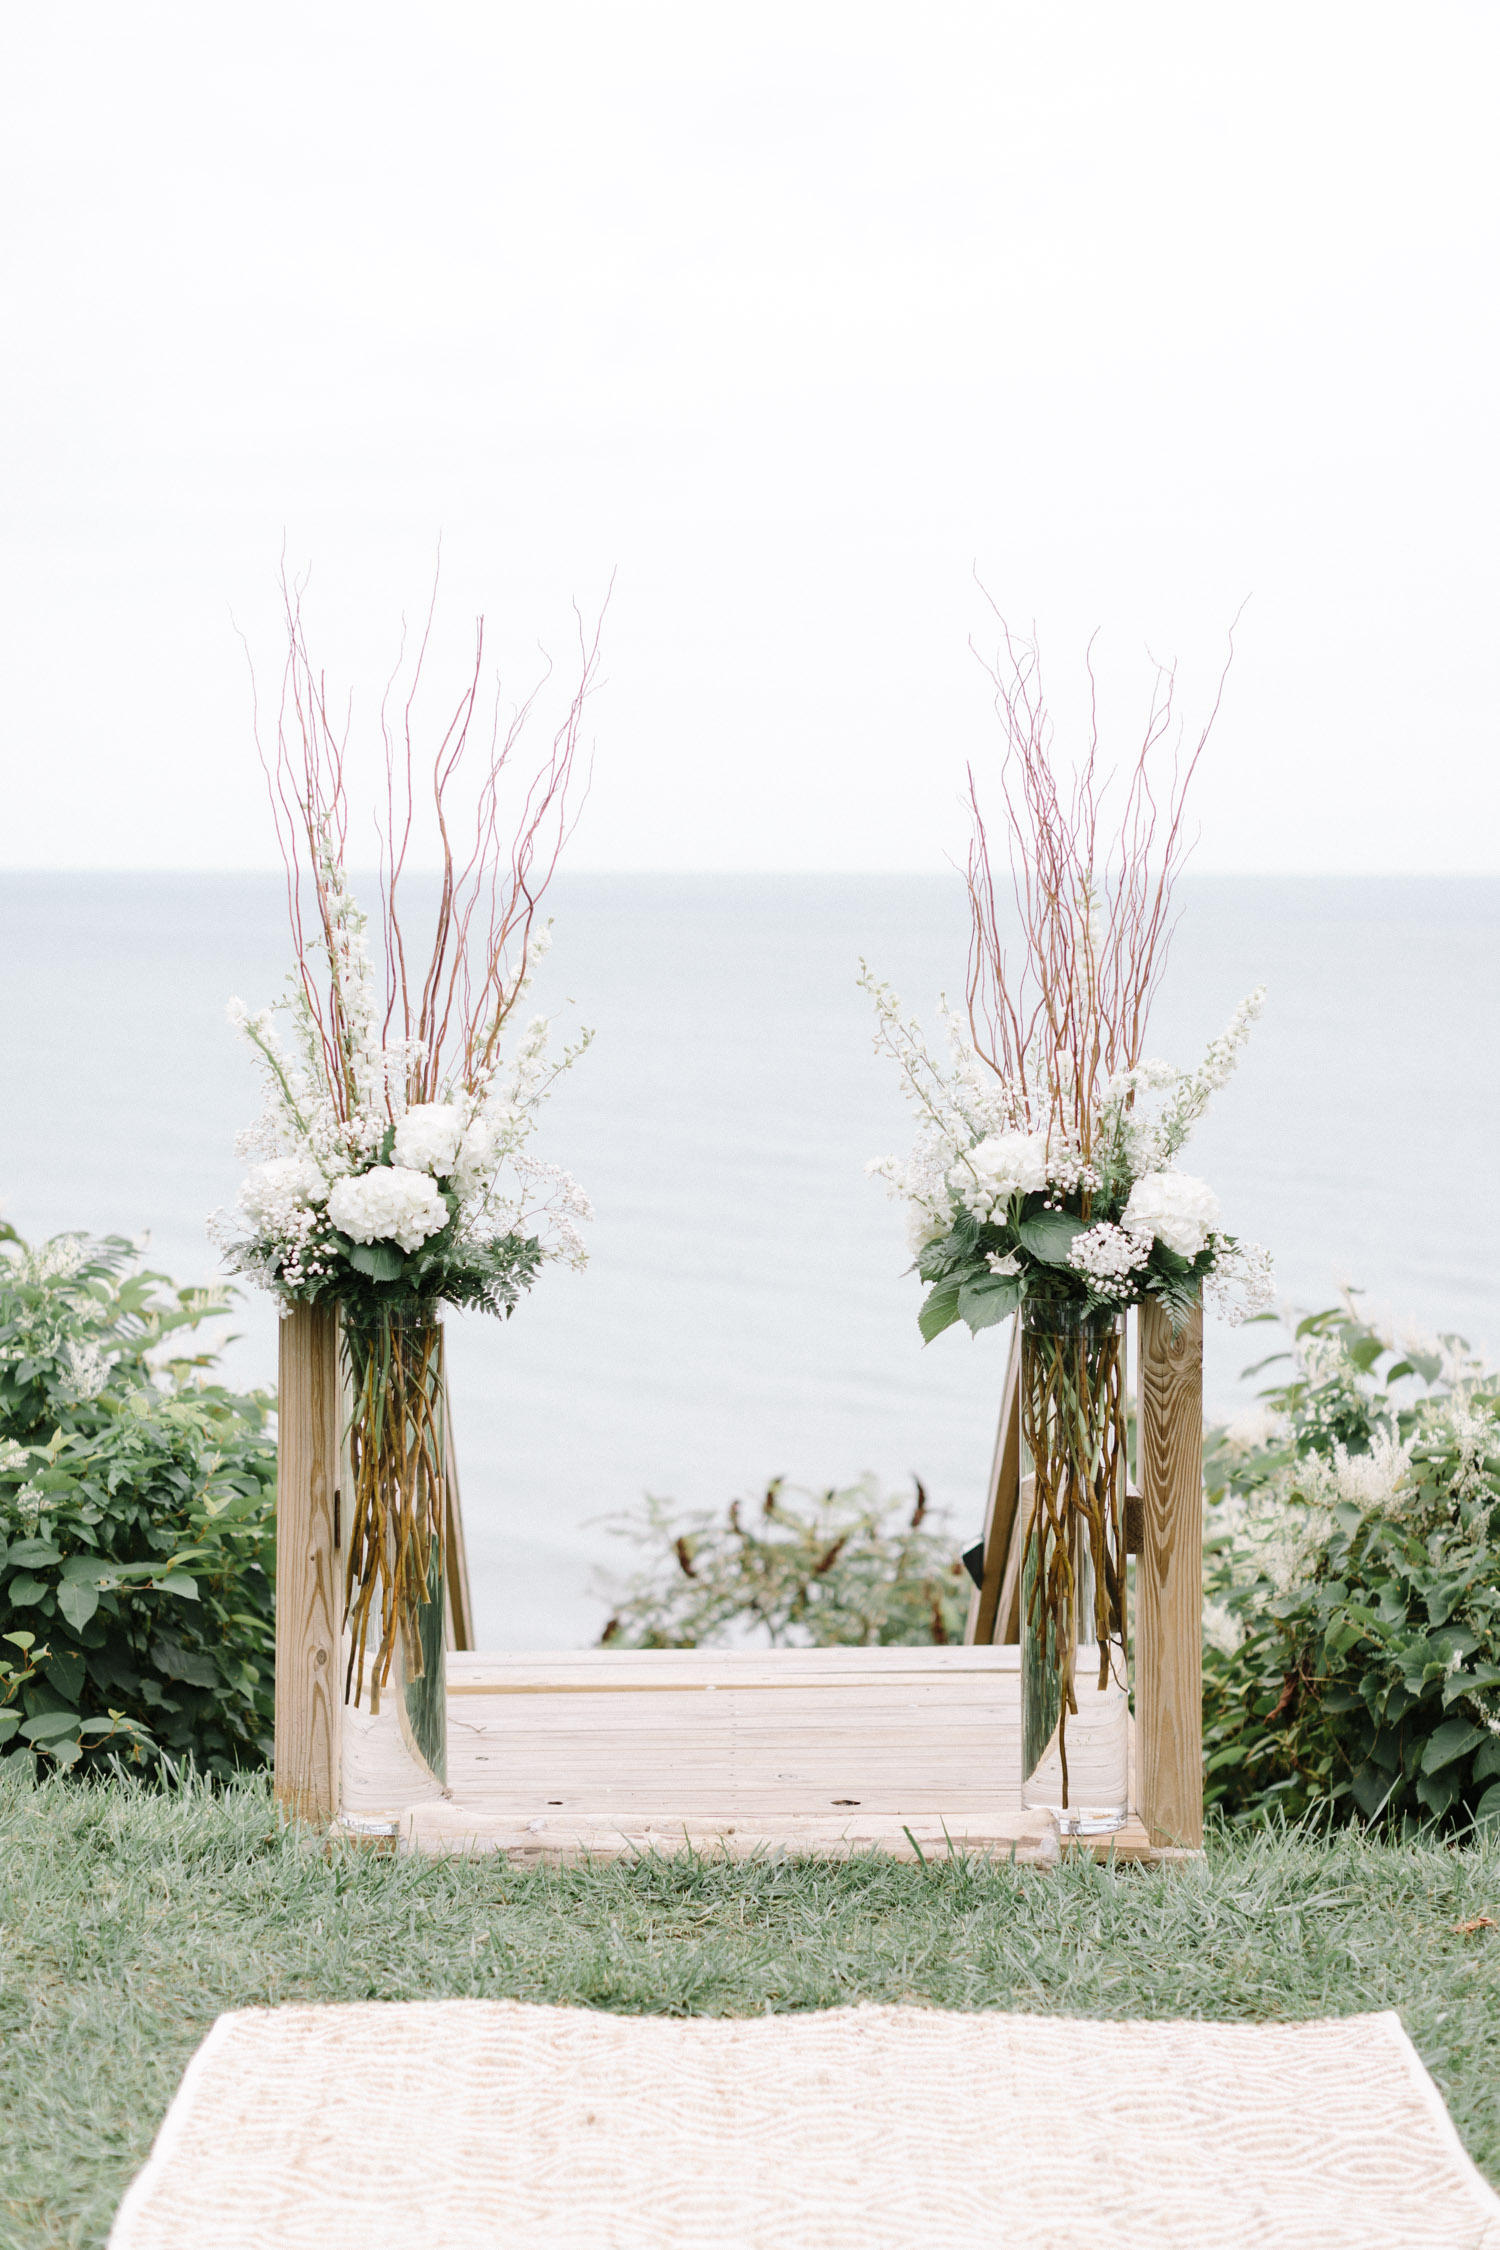 green and white floral arrangements with tall branches serve as wedding ceremony decor for a Lake Michigan September wedding